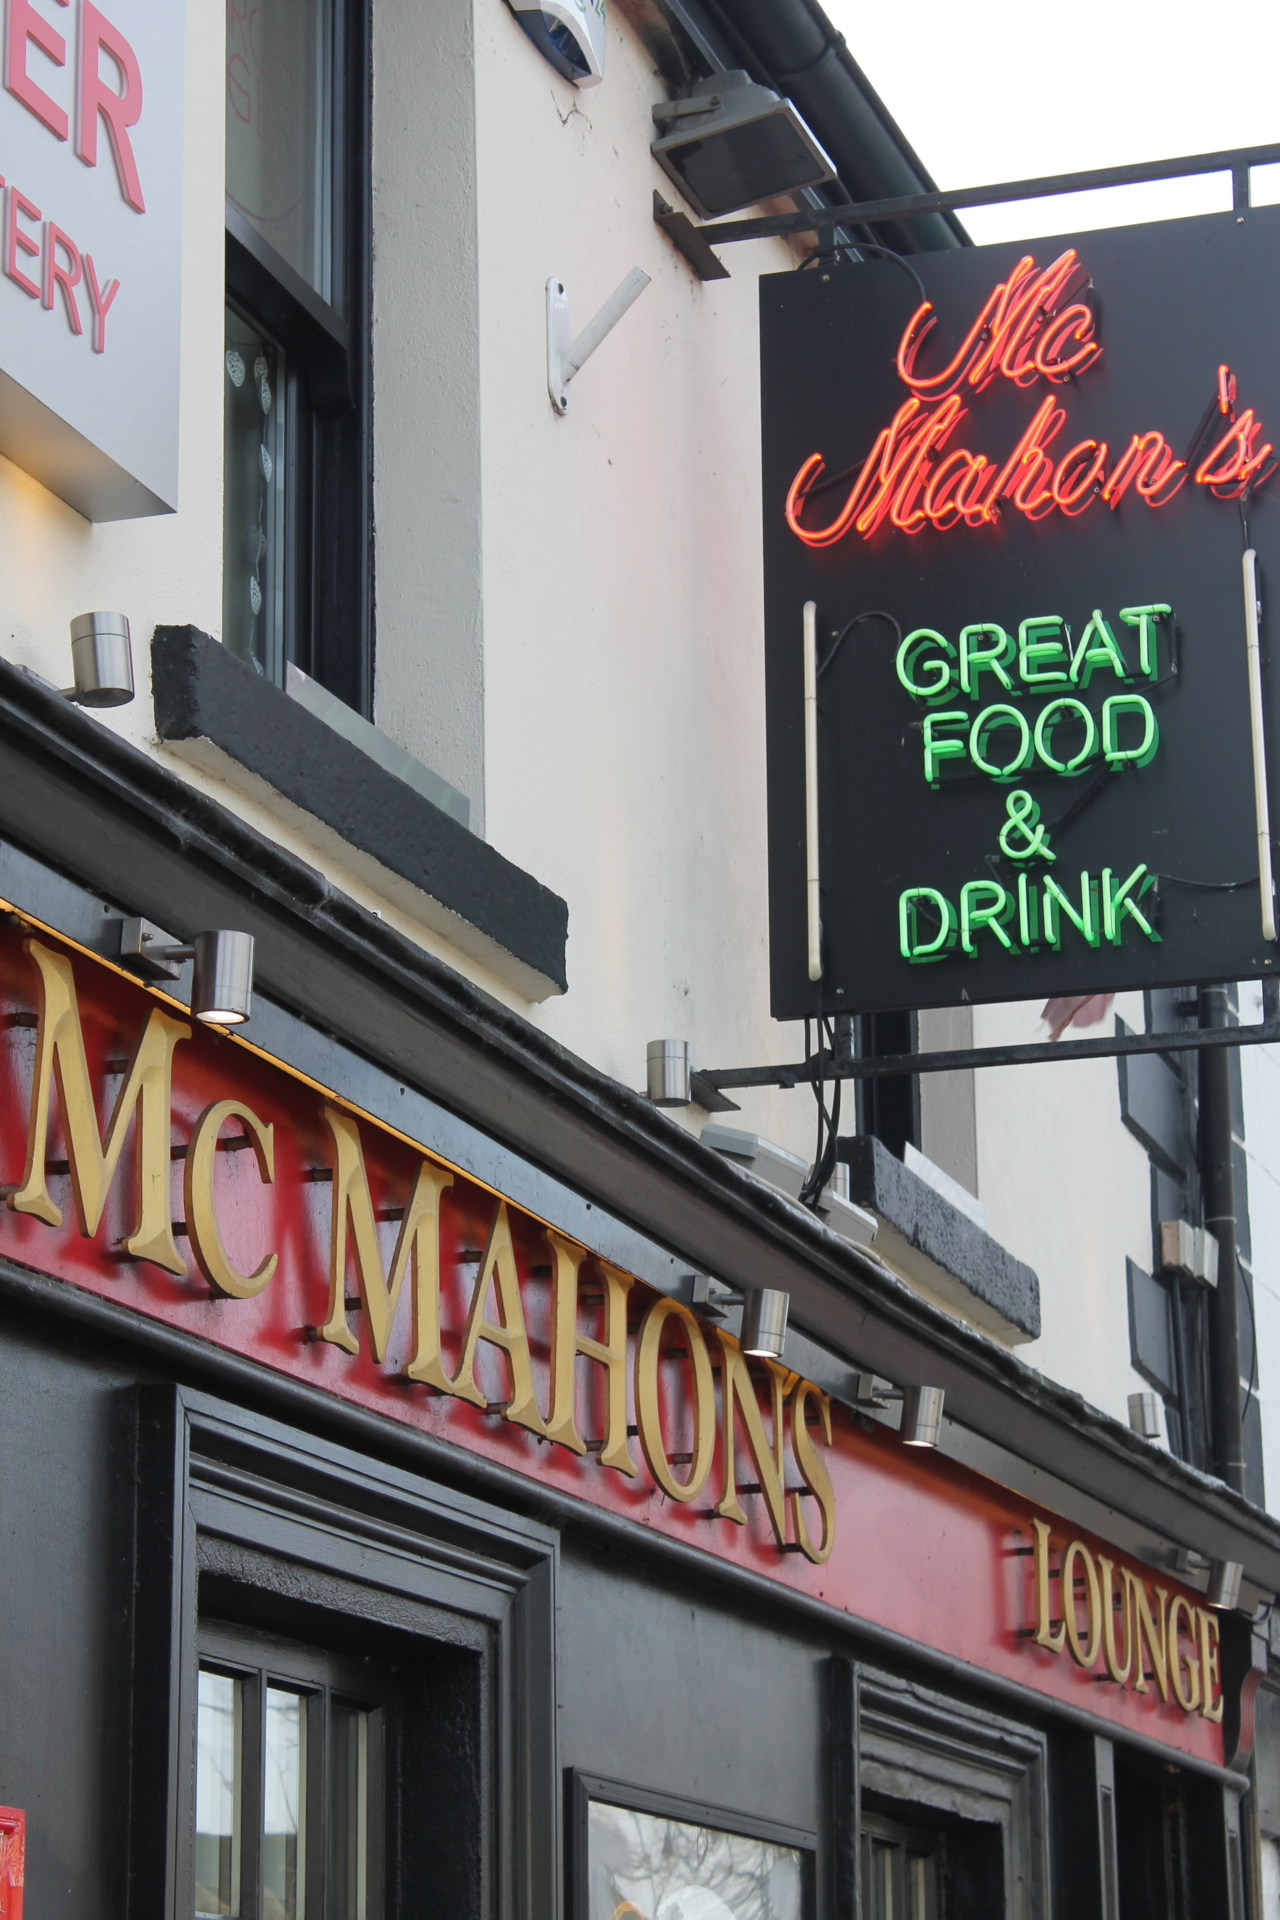 McMahons Bar Maynooth outside view